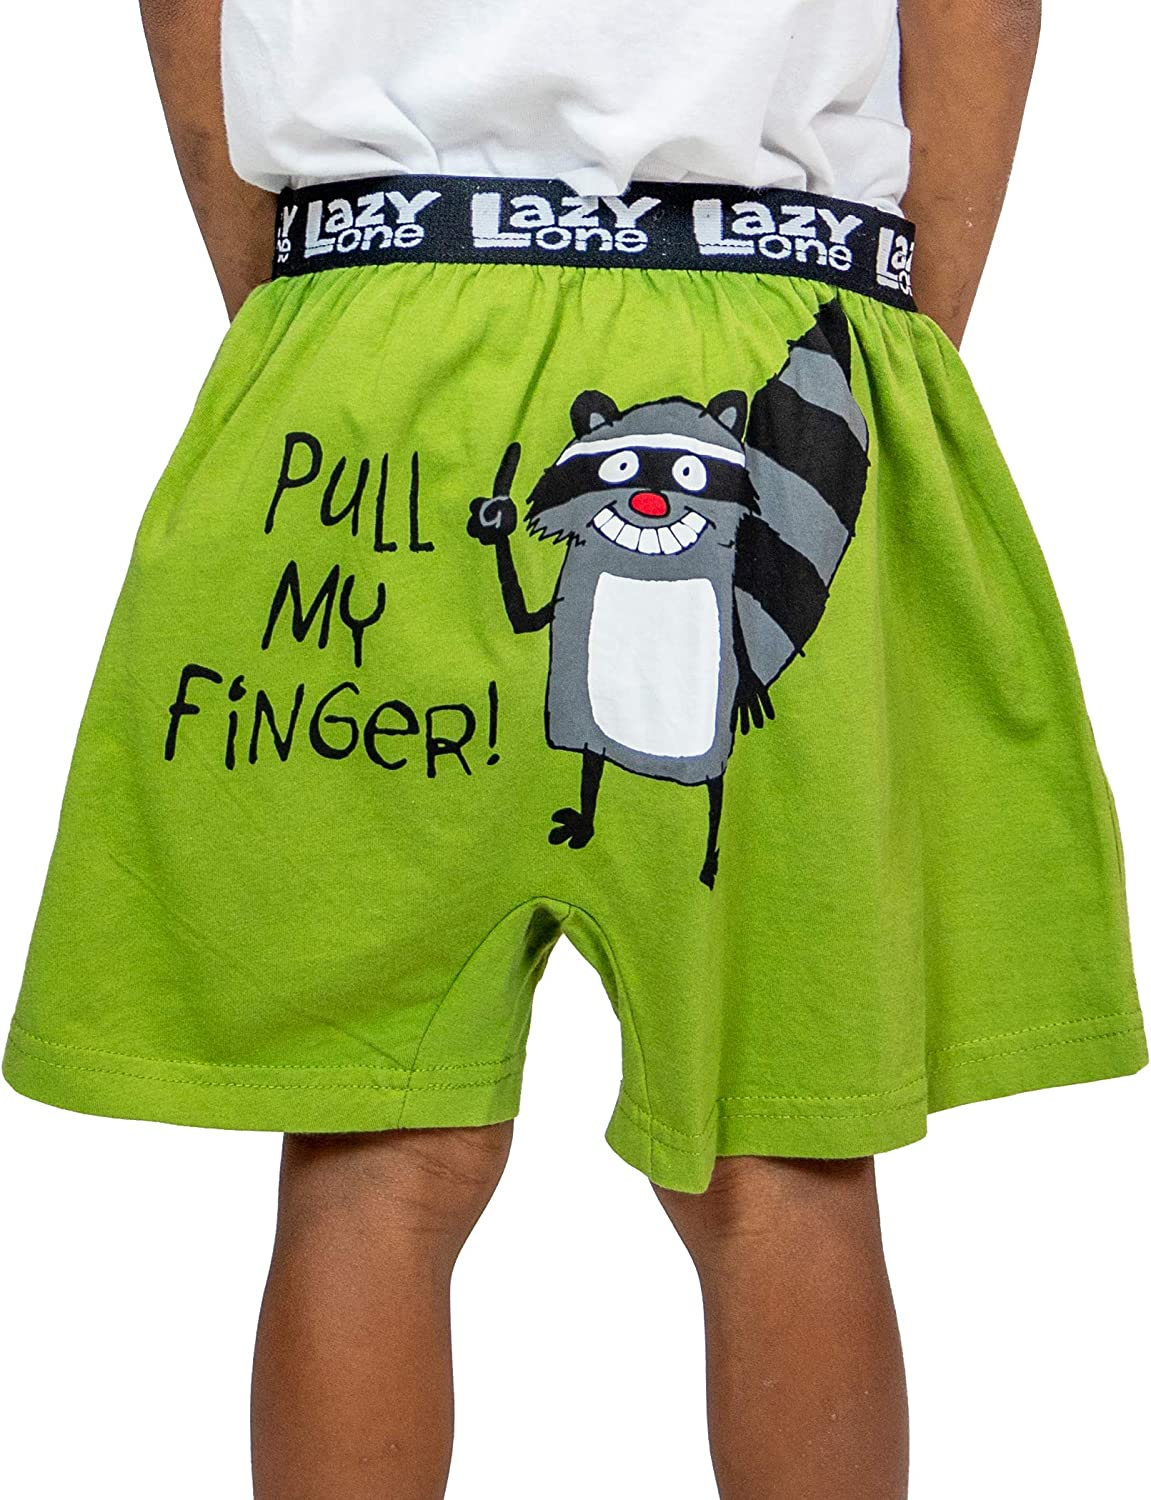 Small Pull My Finger Boys Funny Animal Boxers by LazyOne Kids Comical Underwear